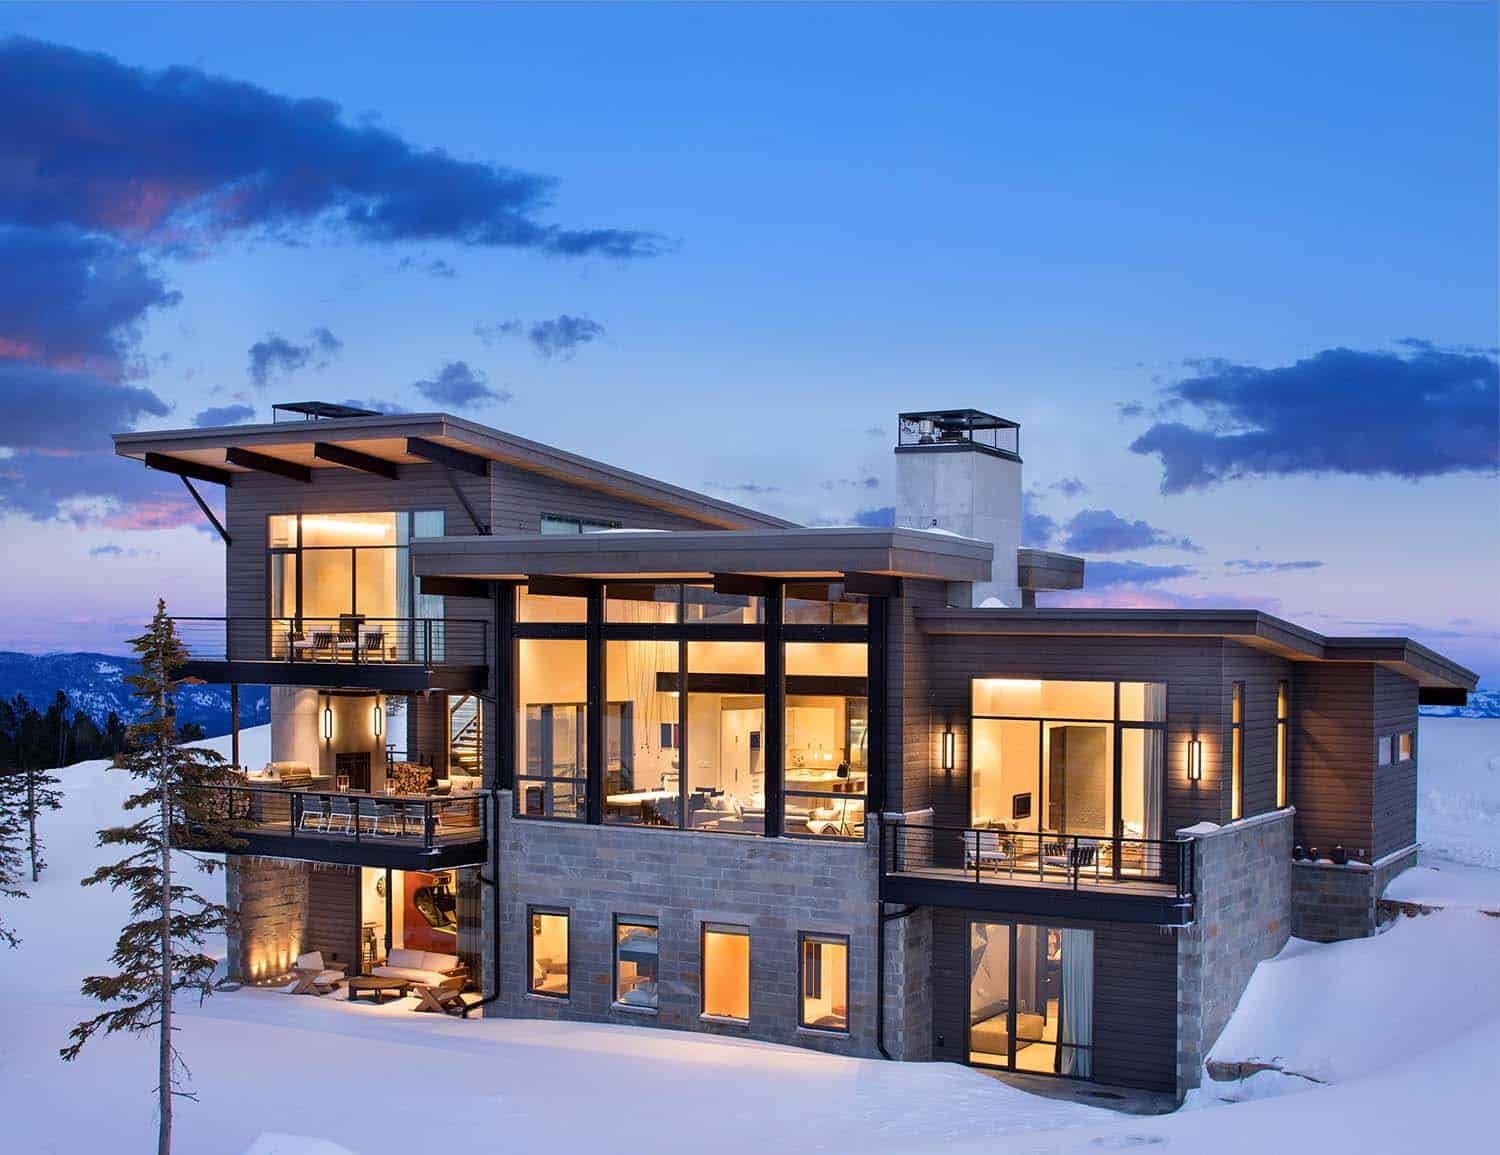 Modern mountain home boasts chic and stylish living in montana for Mountain home architects